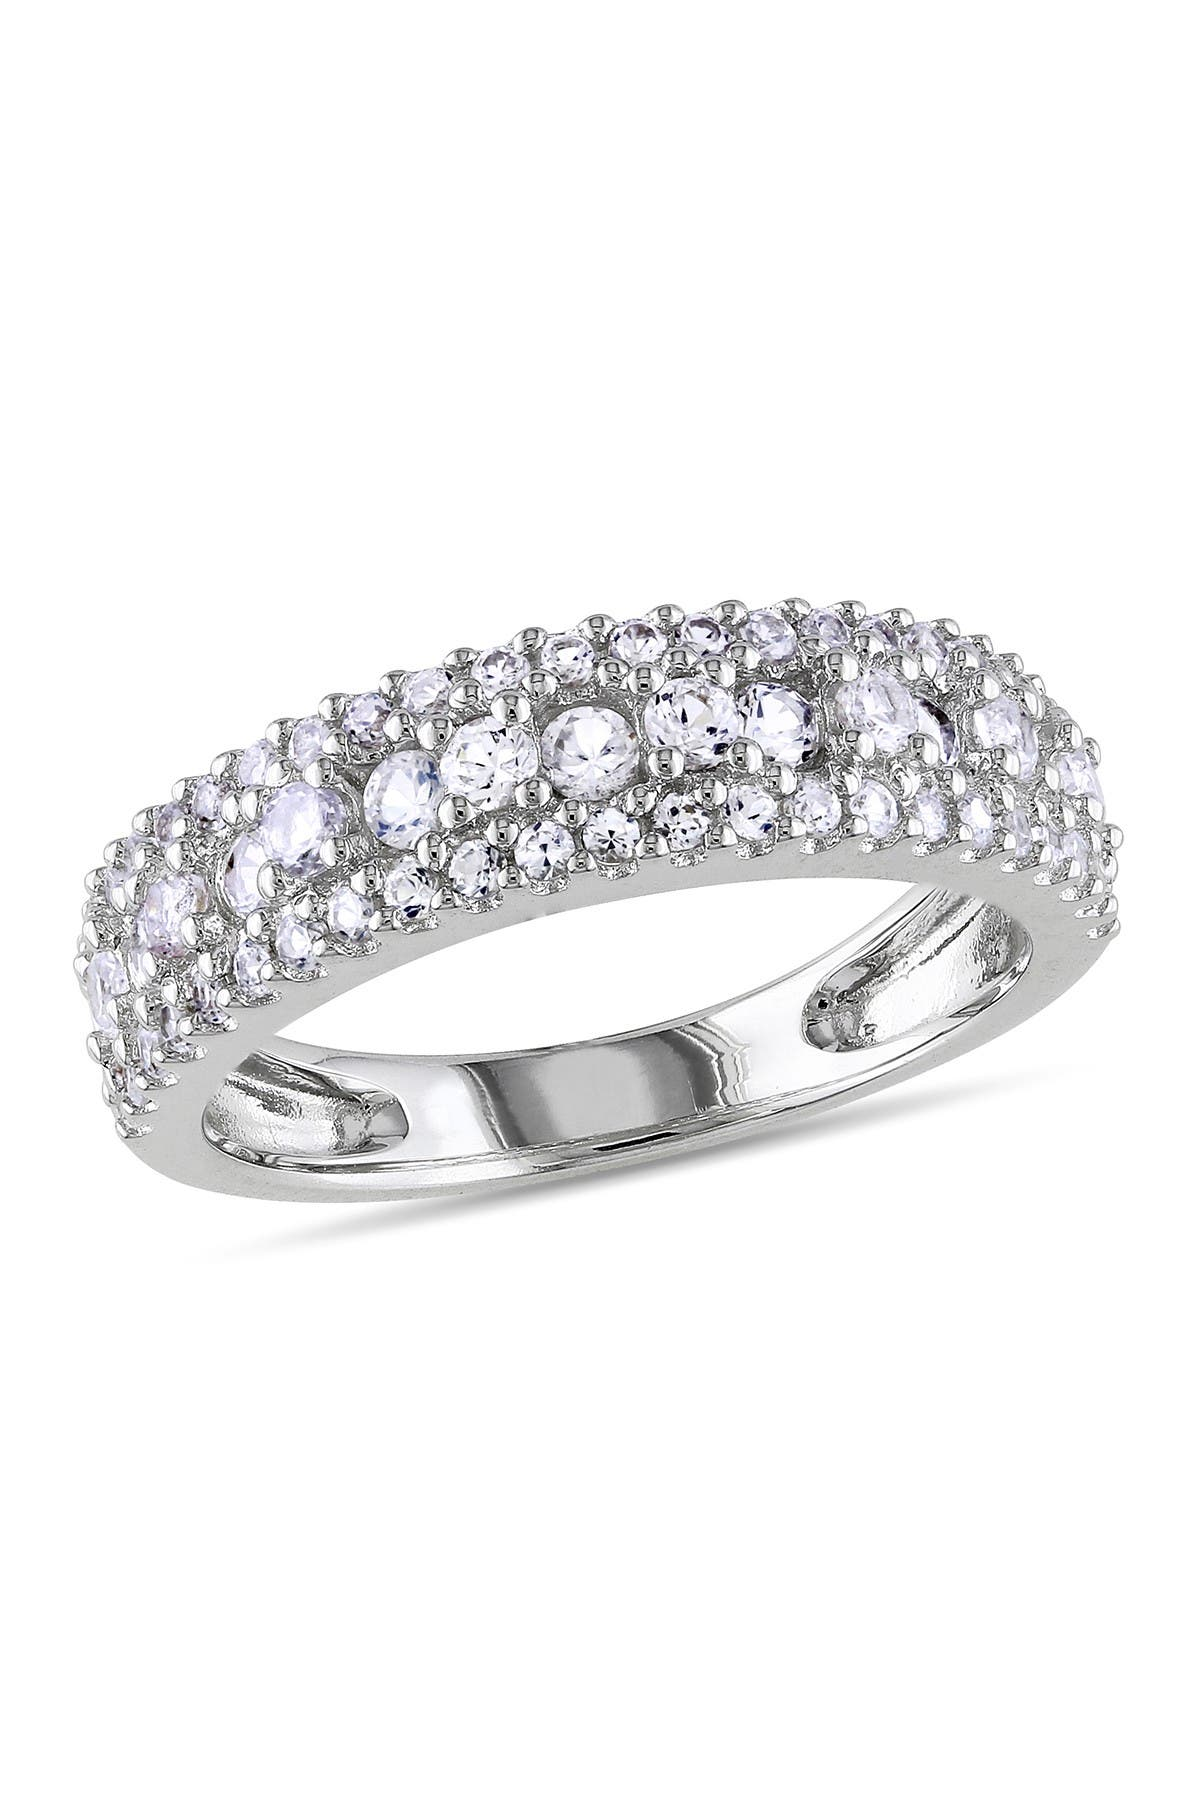 Image of Delmar Sterling Silver White Sapphire Bi-Level Pave Band